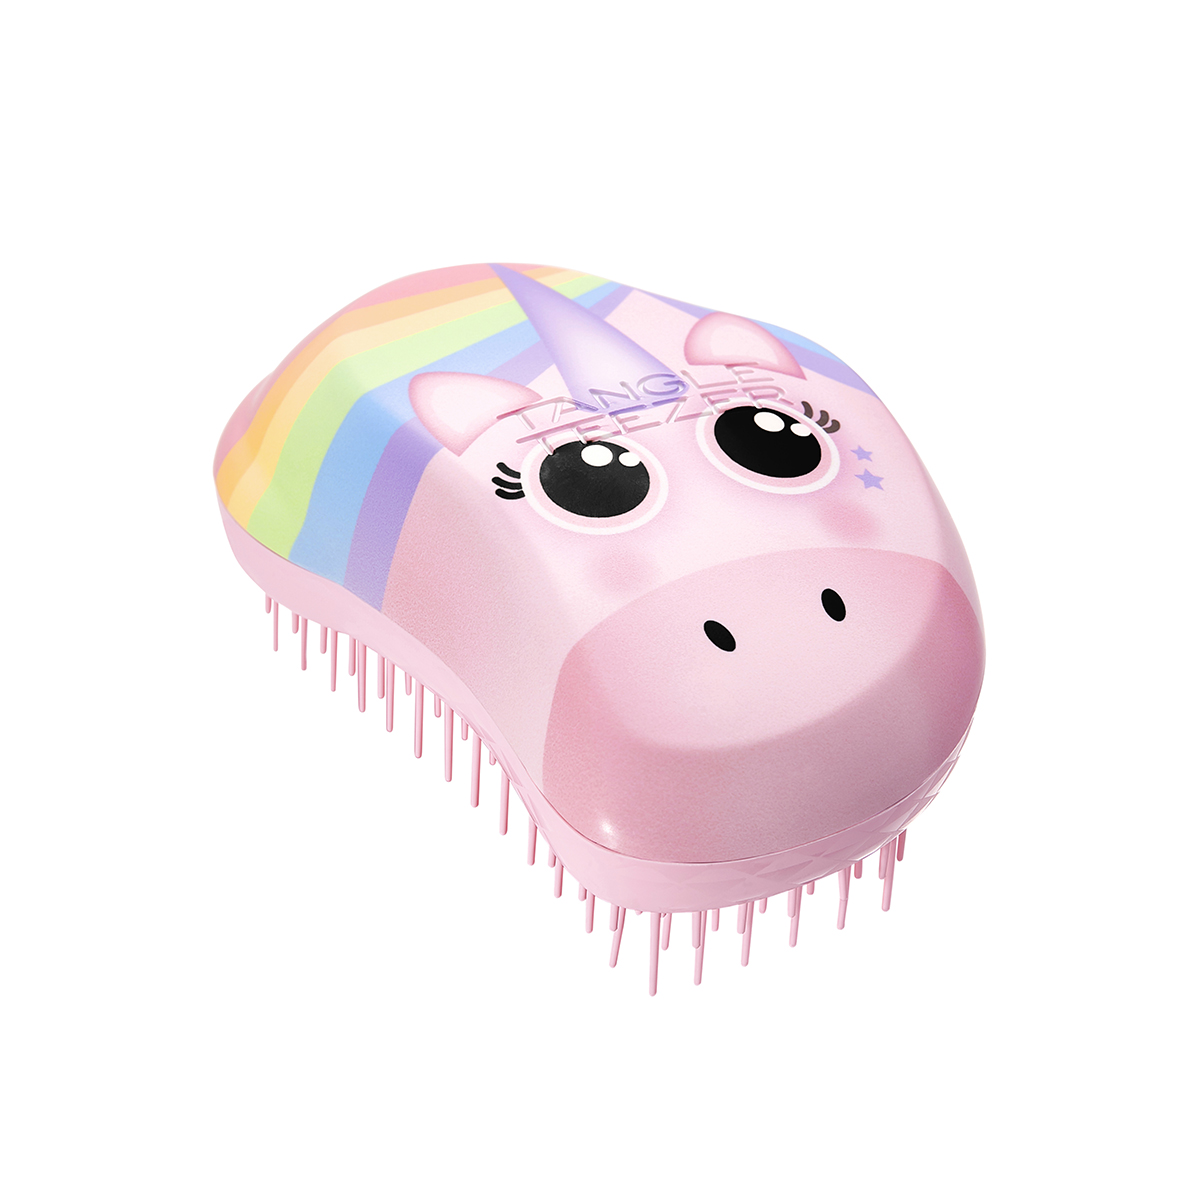 Расческа детская Tangle Teezer The Original Mini Rainbow The Unicorn